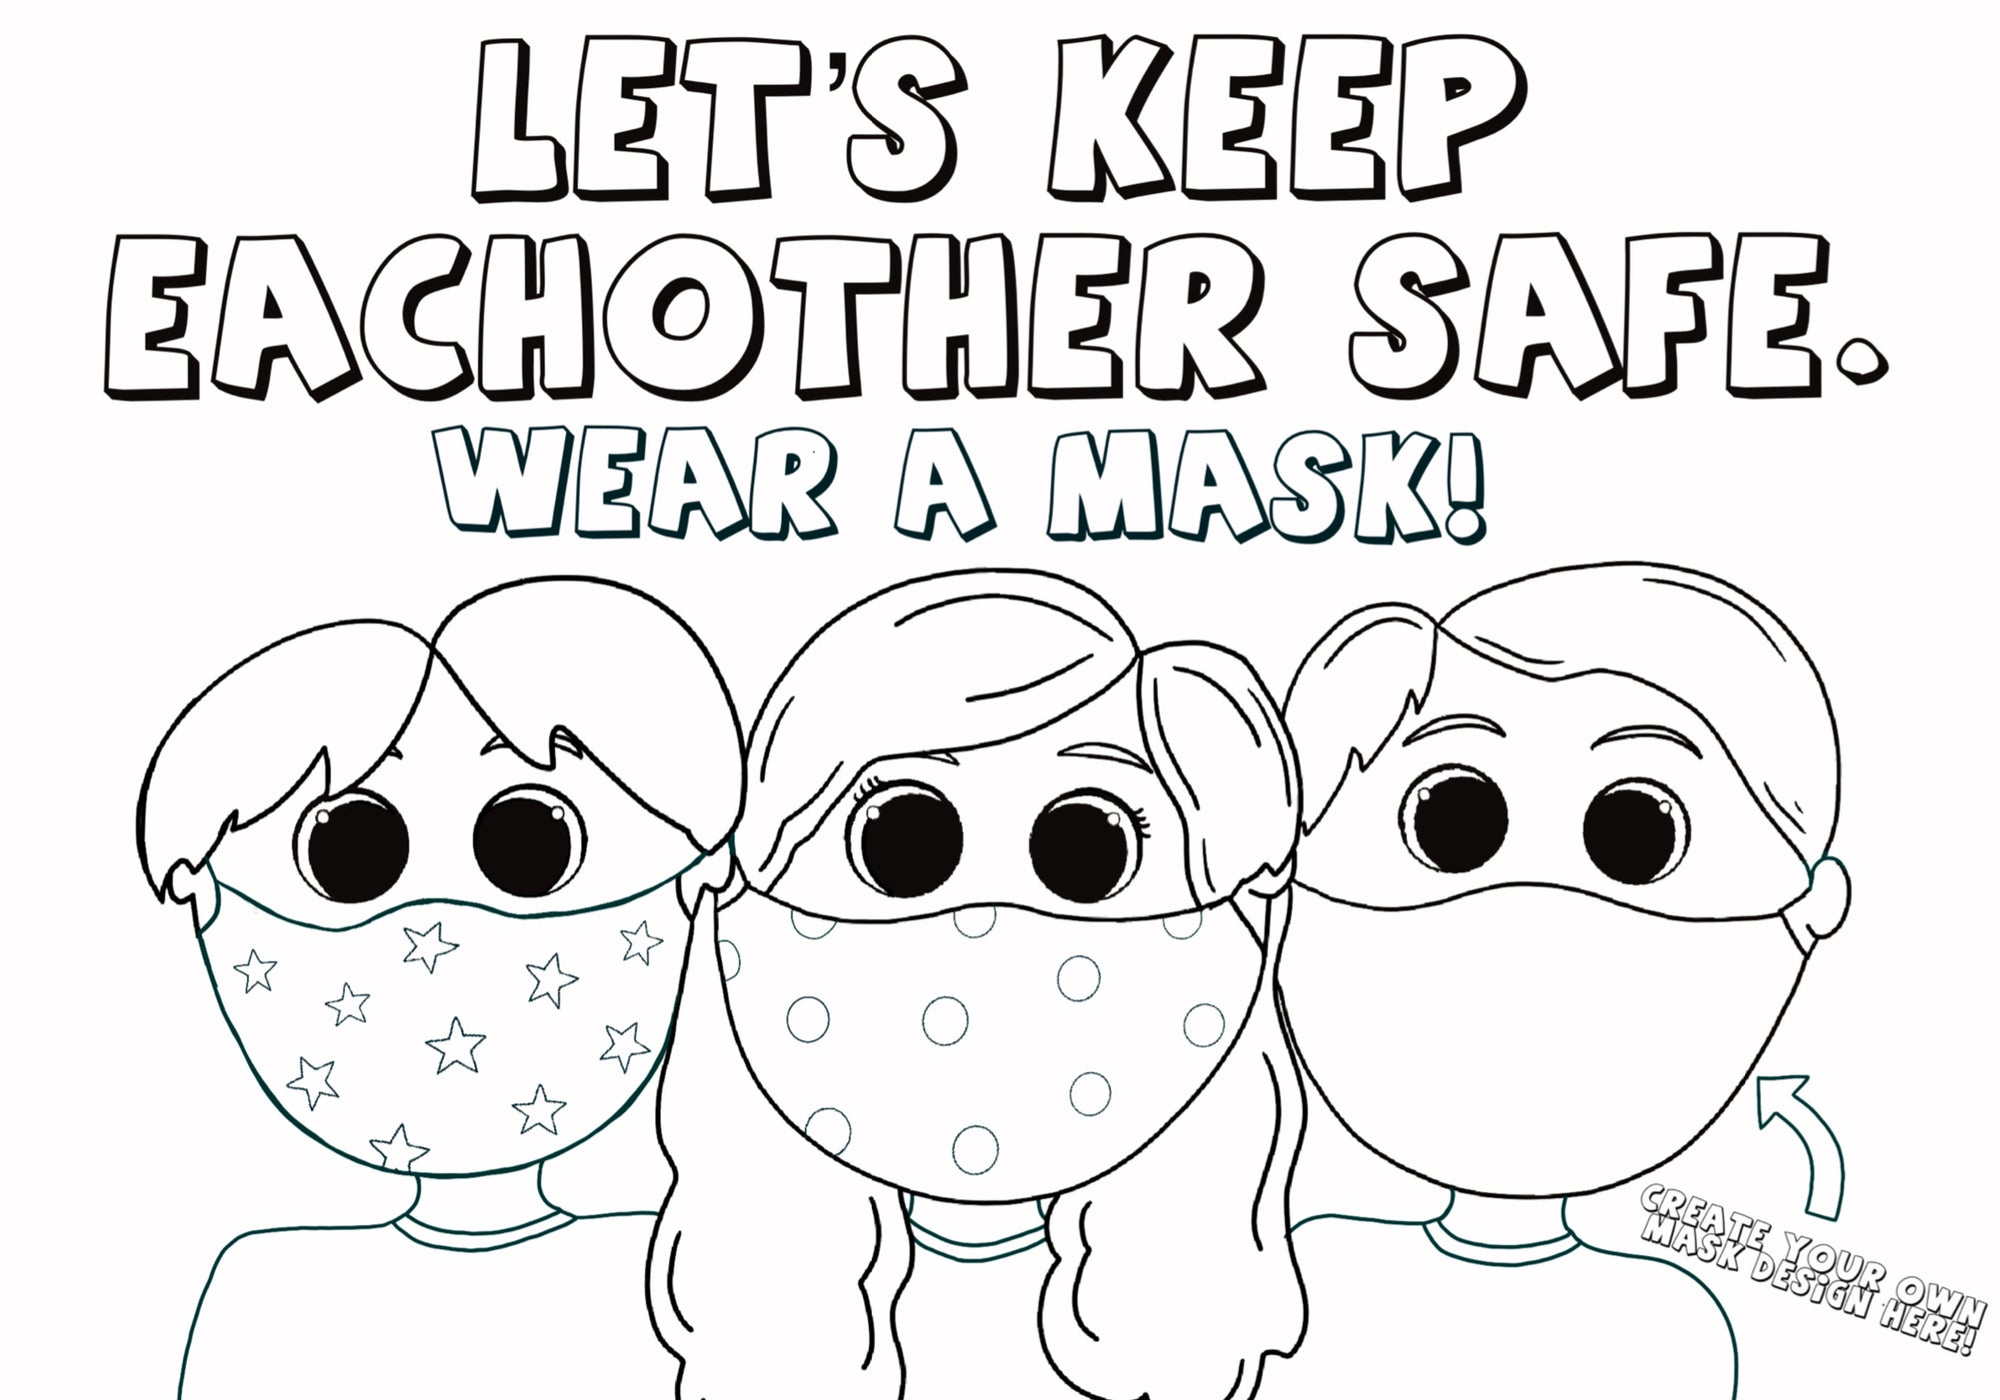 kids wearing face masks coloring page love woolies kids wearing face masks coloring page